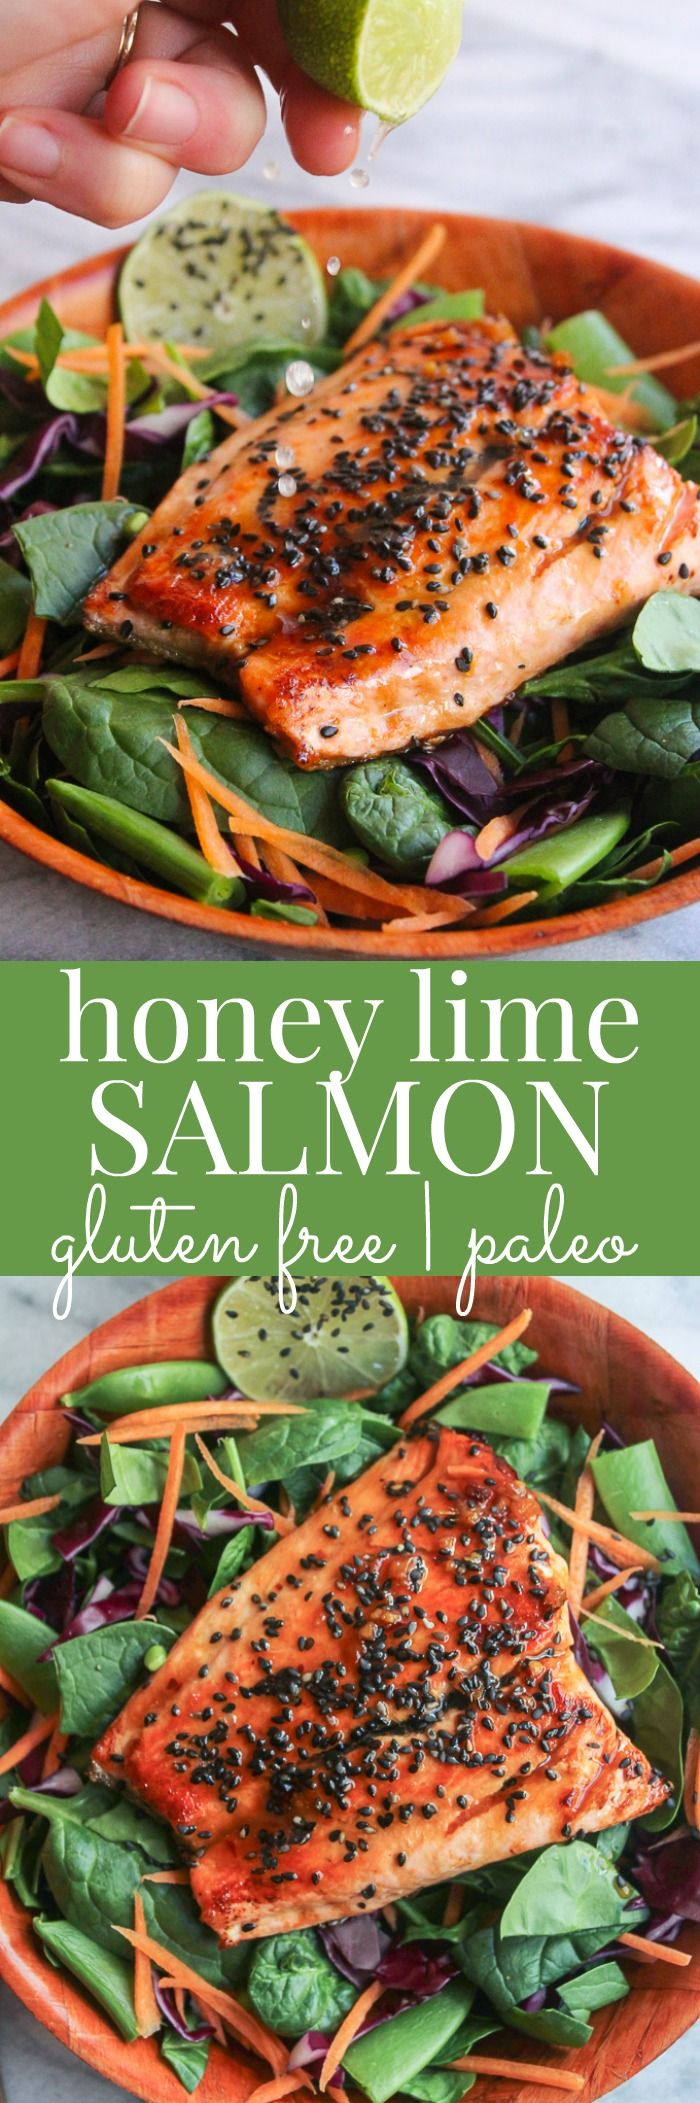 Use arrowroot and coconut aminos to make paleo friendly! Honey Lime Salmon  easy + healthy 15 minute dinner that's gluten free & paleo friendly